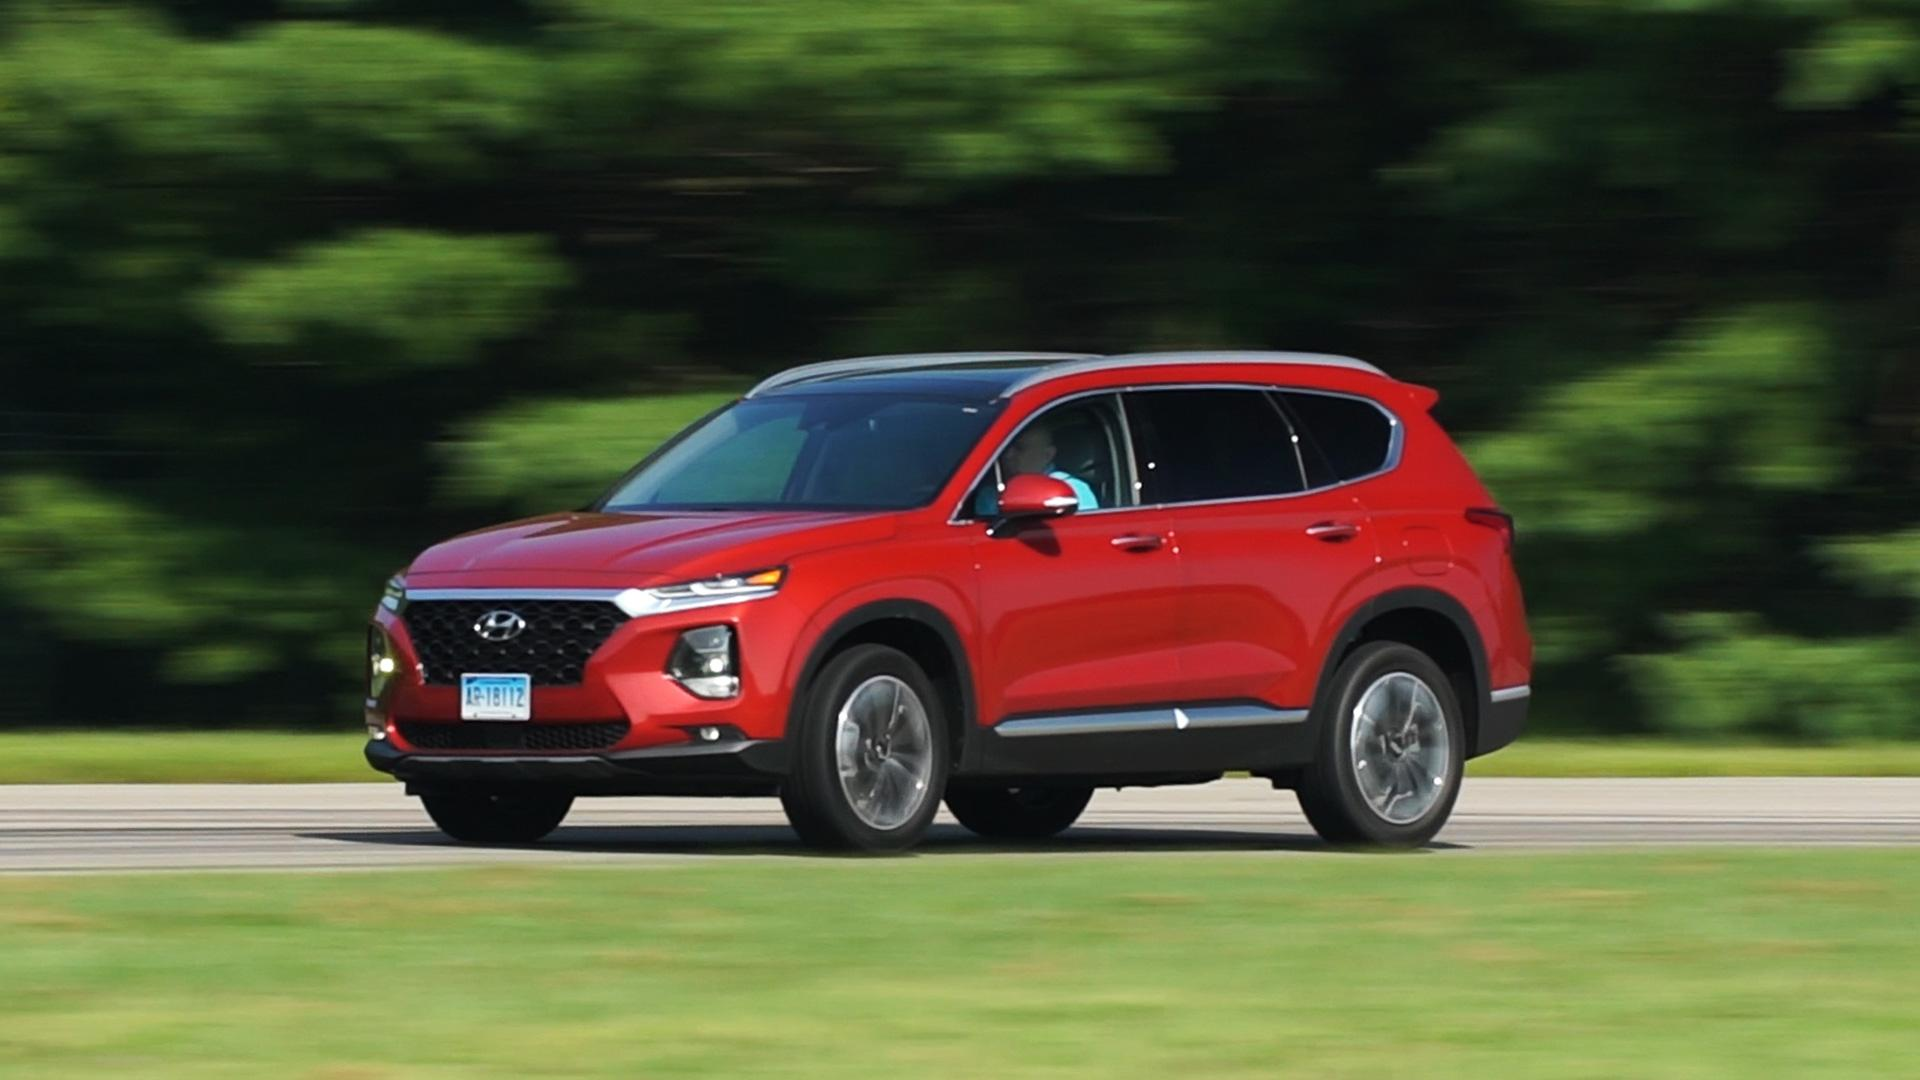 2019 hyundai santa fe is a well rounded impressive suv [ 1920 x 1080 Pixel ]